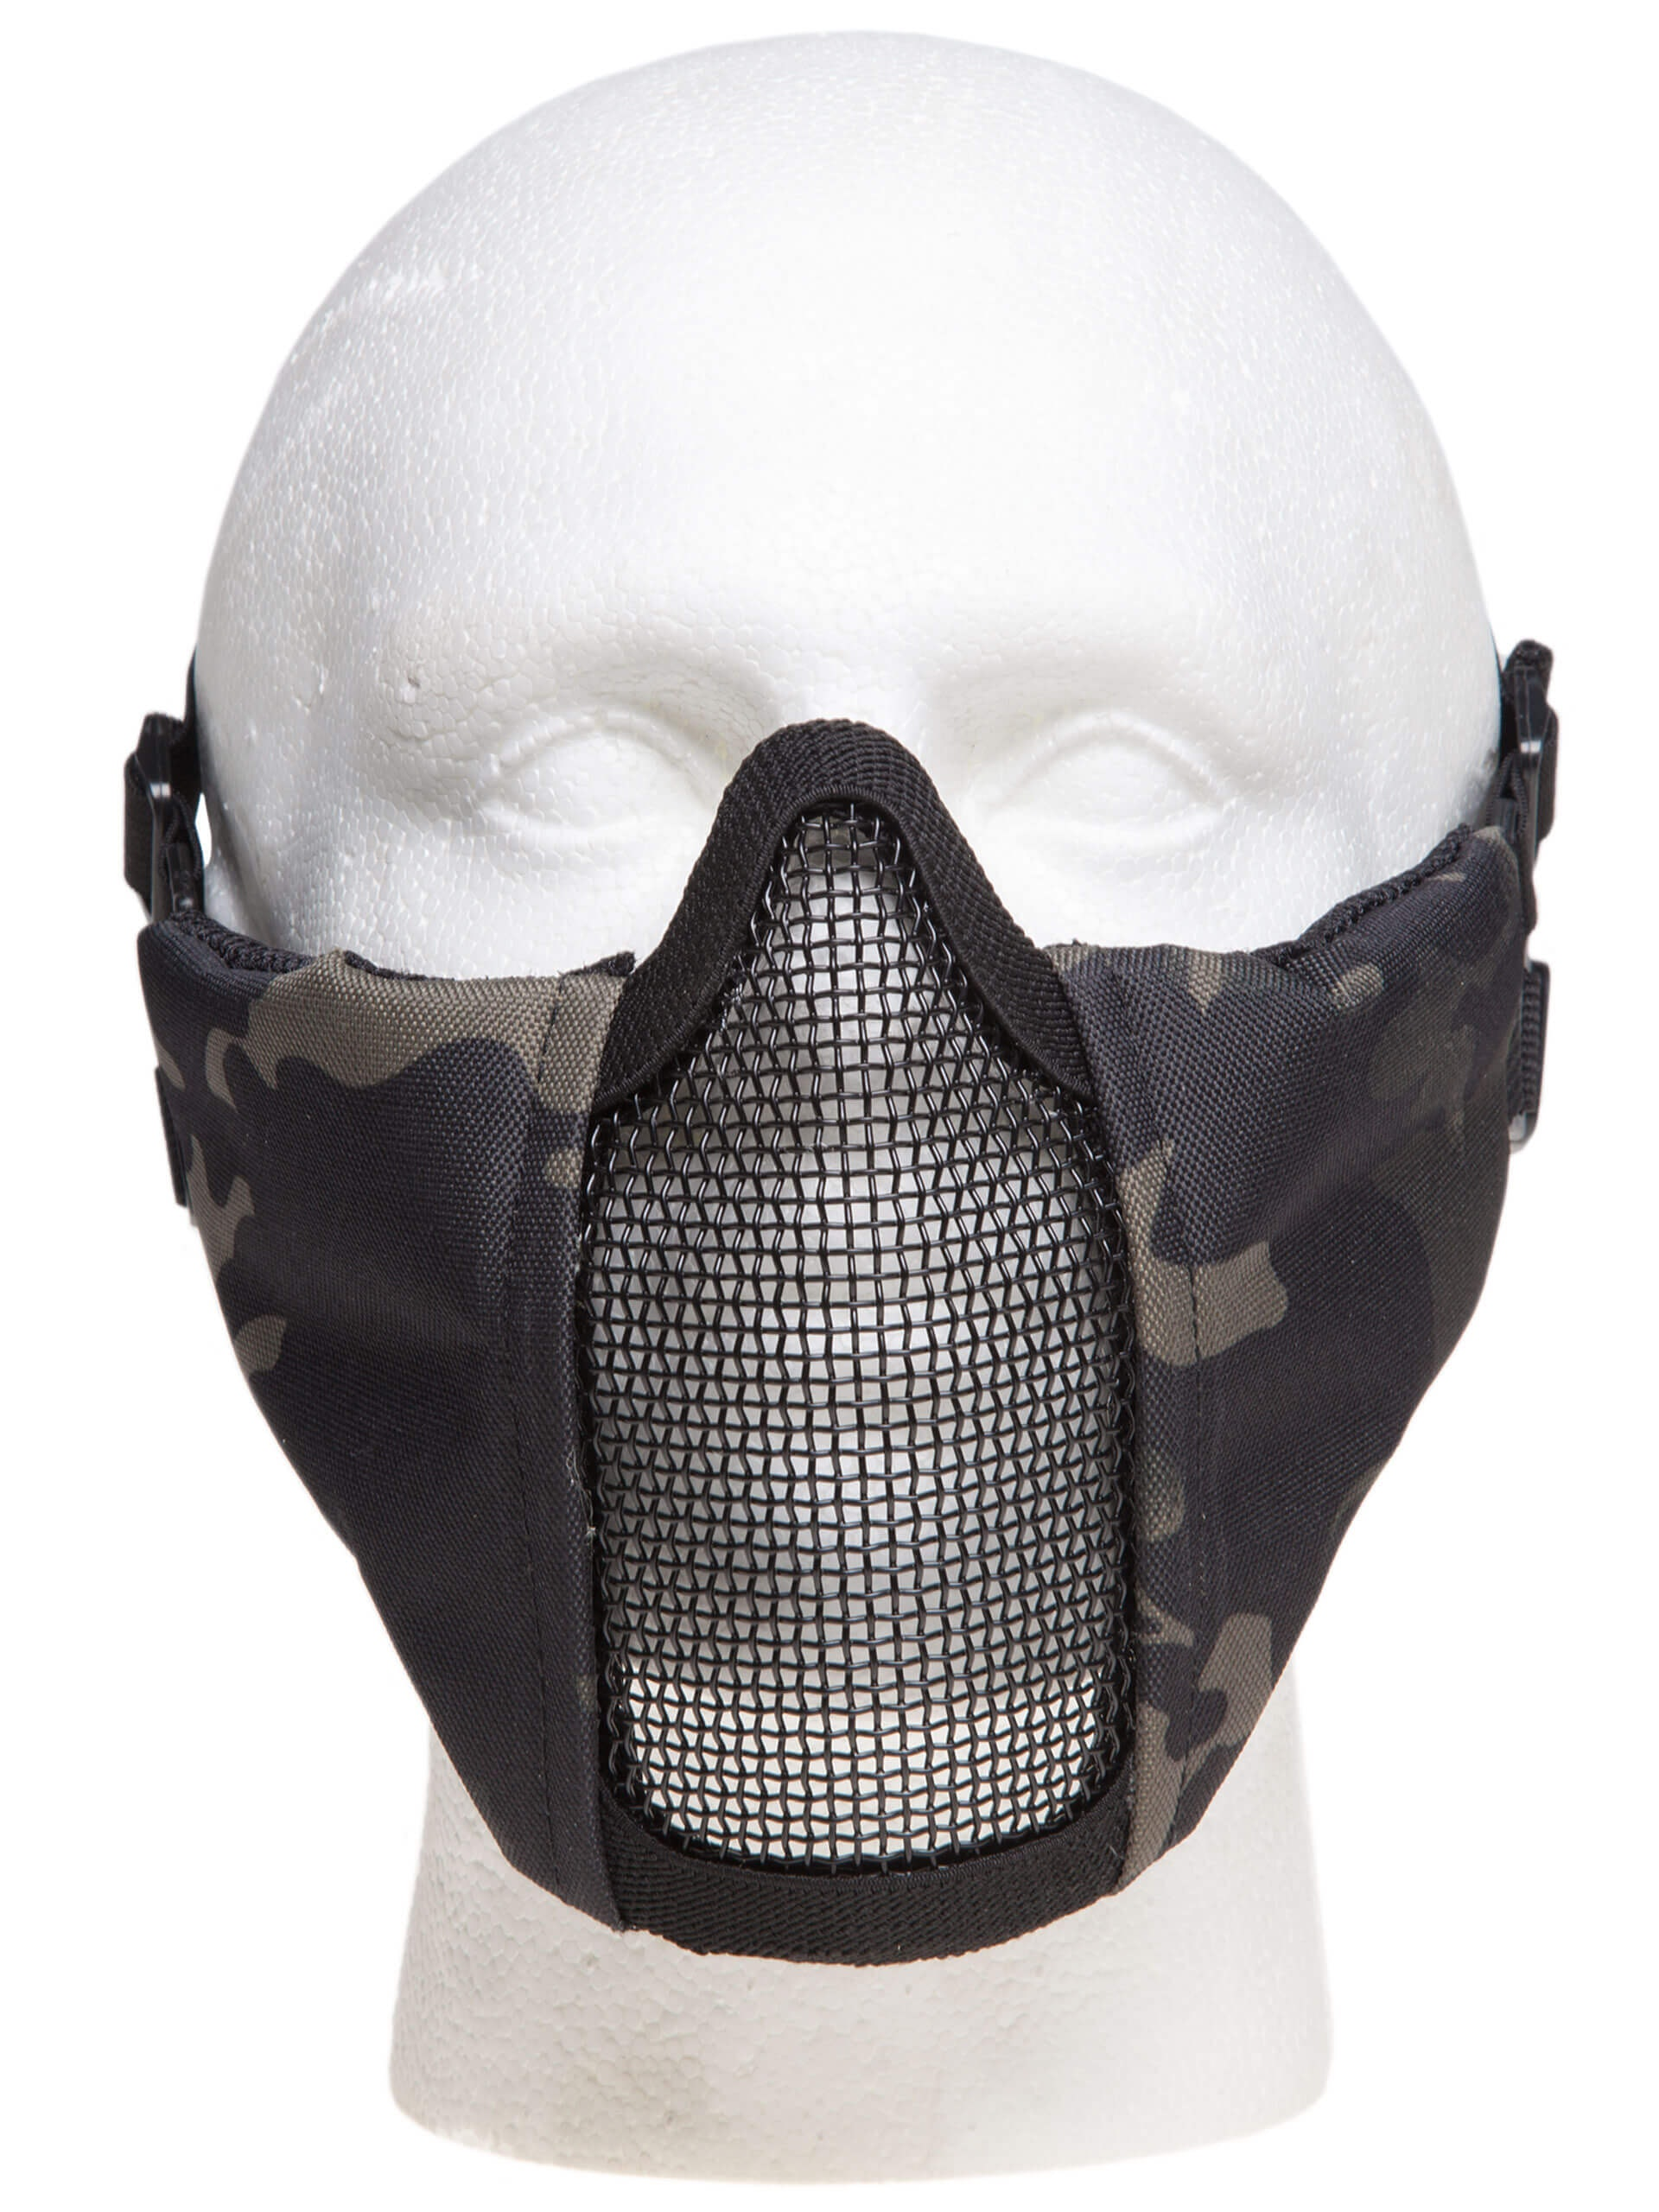 Kombat UK - Recon Face Mask Mesh Lower Face Protection